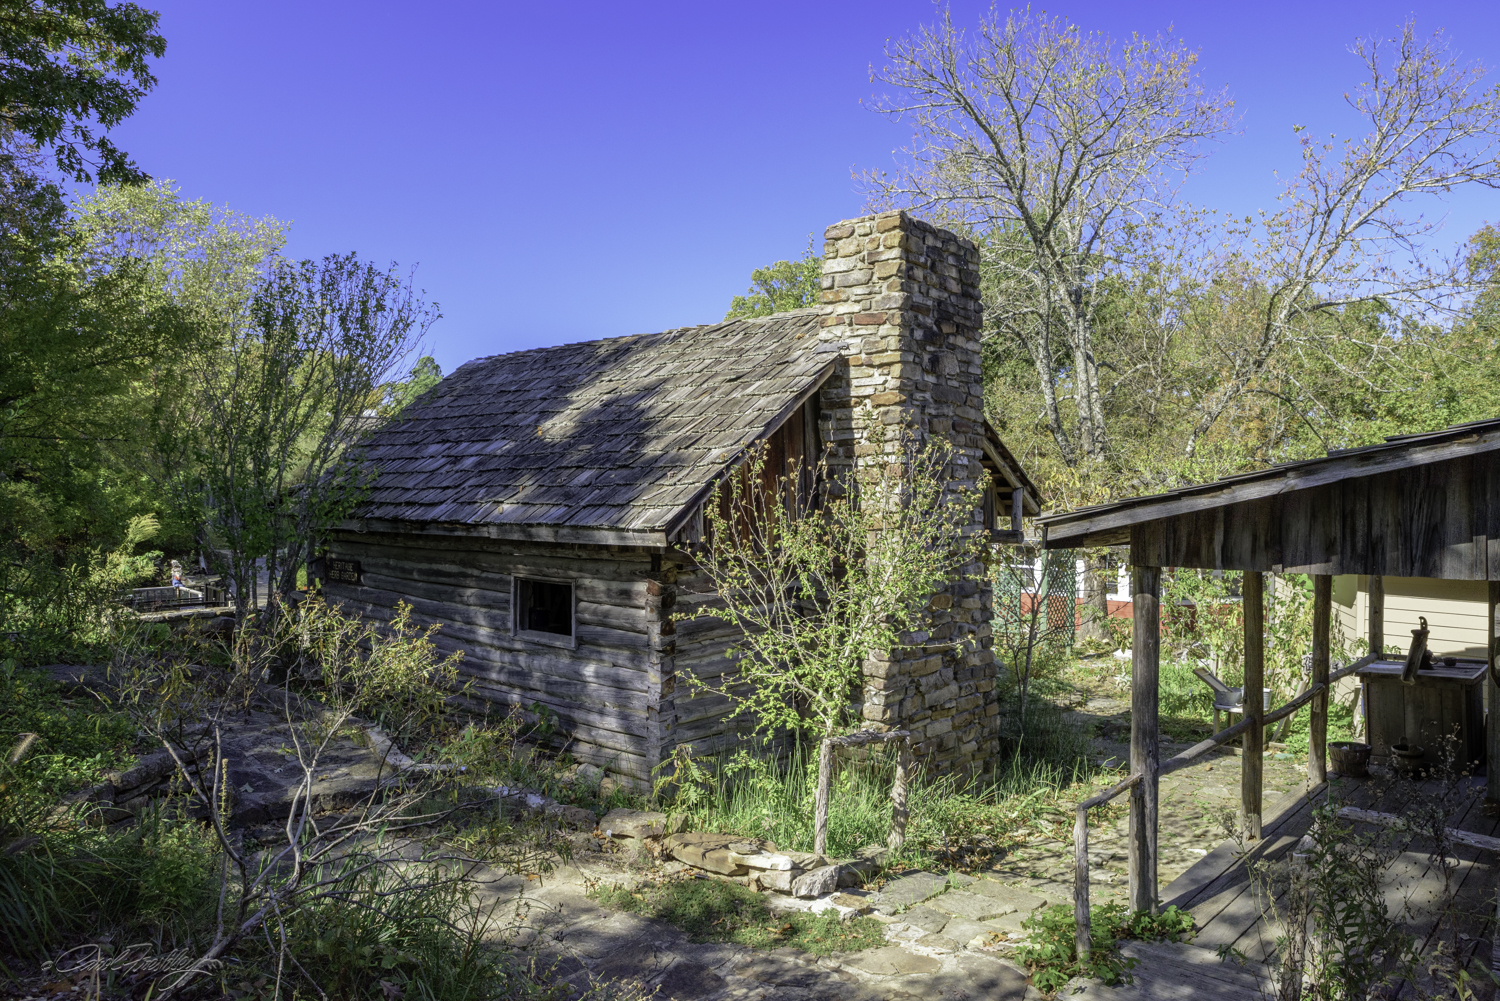 The Center consists of a number of rustic cabins such as the one above. Inside, however, are modern conveniences such as electricity and running water.